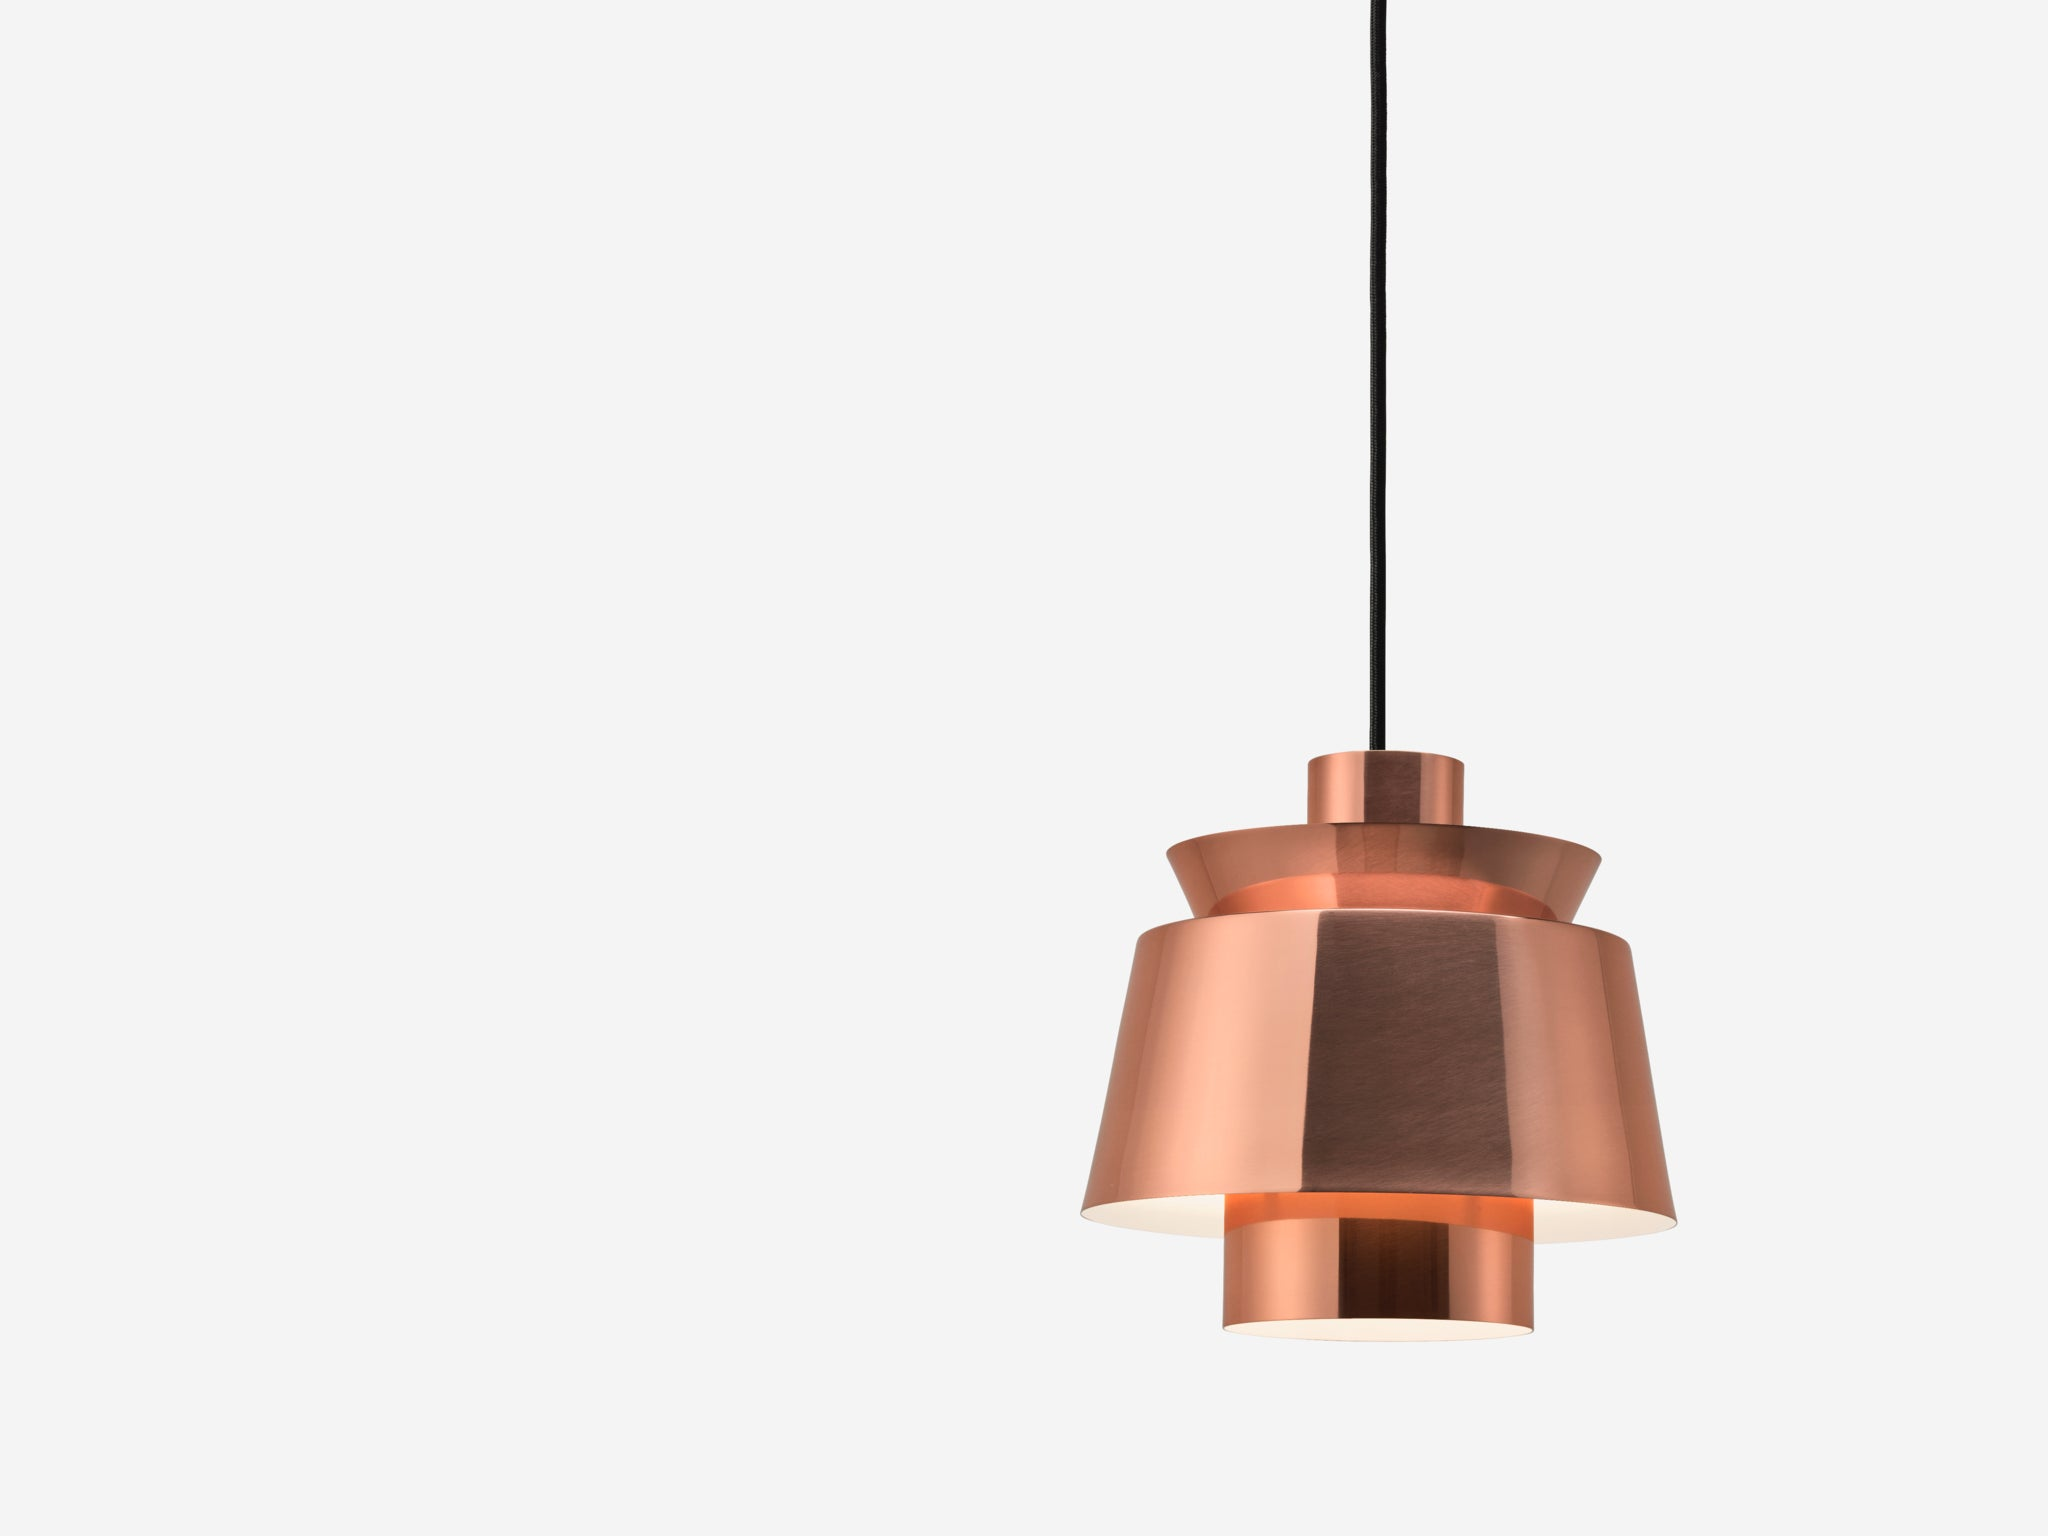 Lampa Utzon JU1 | Andtradition | Designzoo